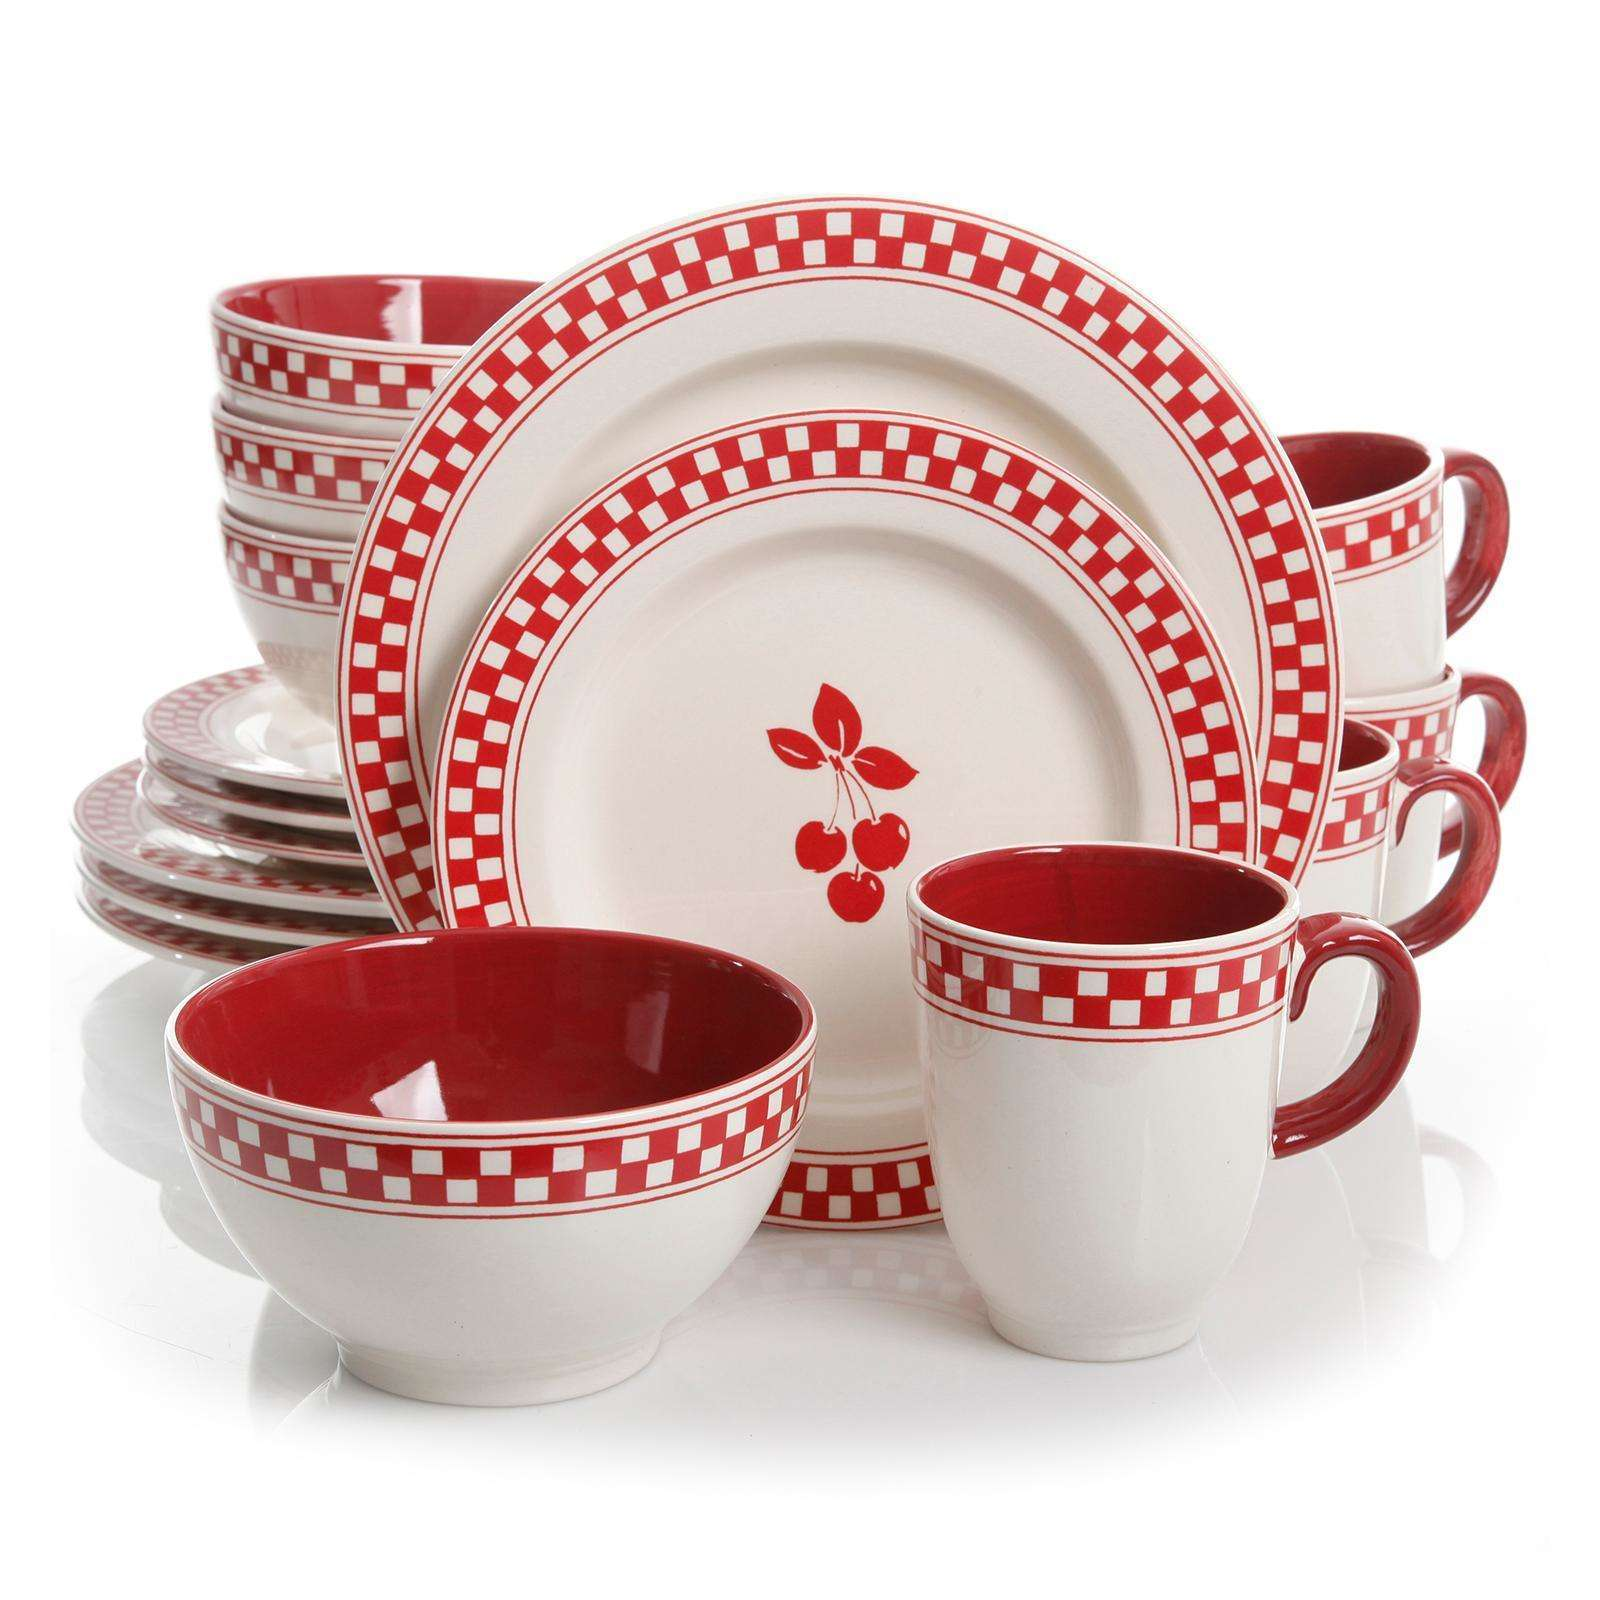 Gibson General Store 16 Piece Cherry Diner Ceramic Dinnerware  Set